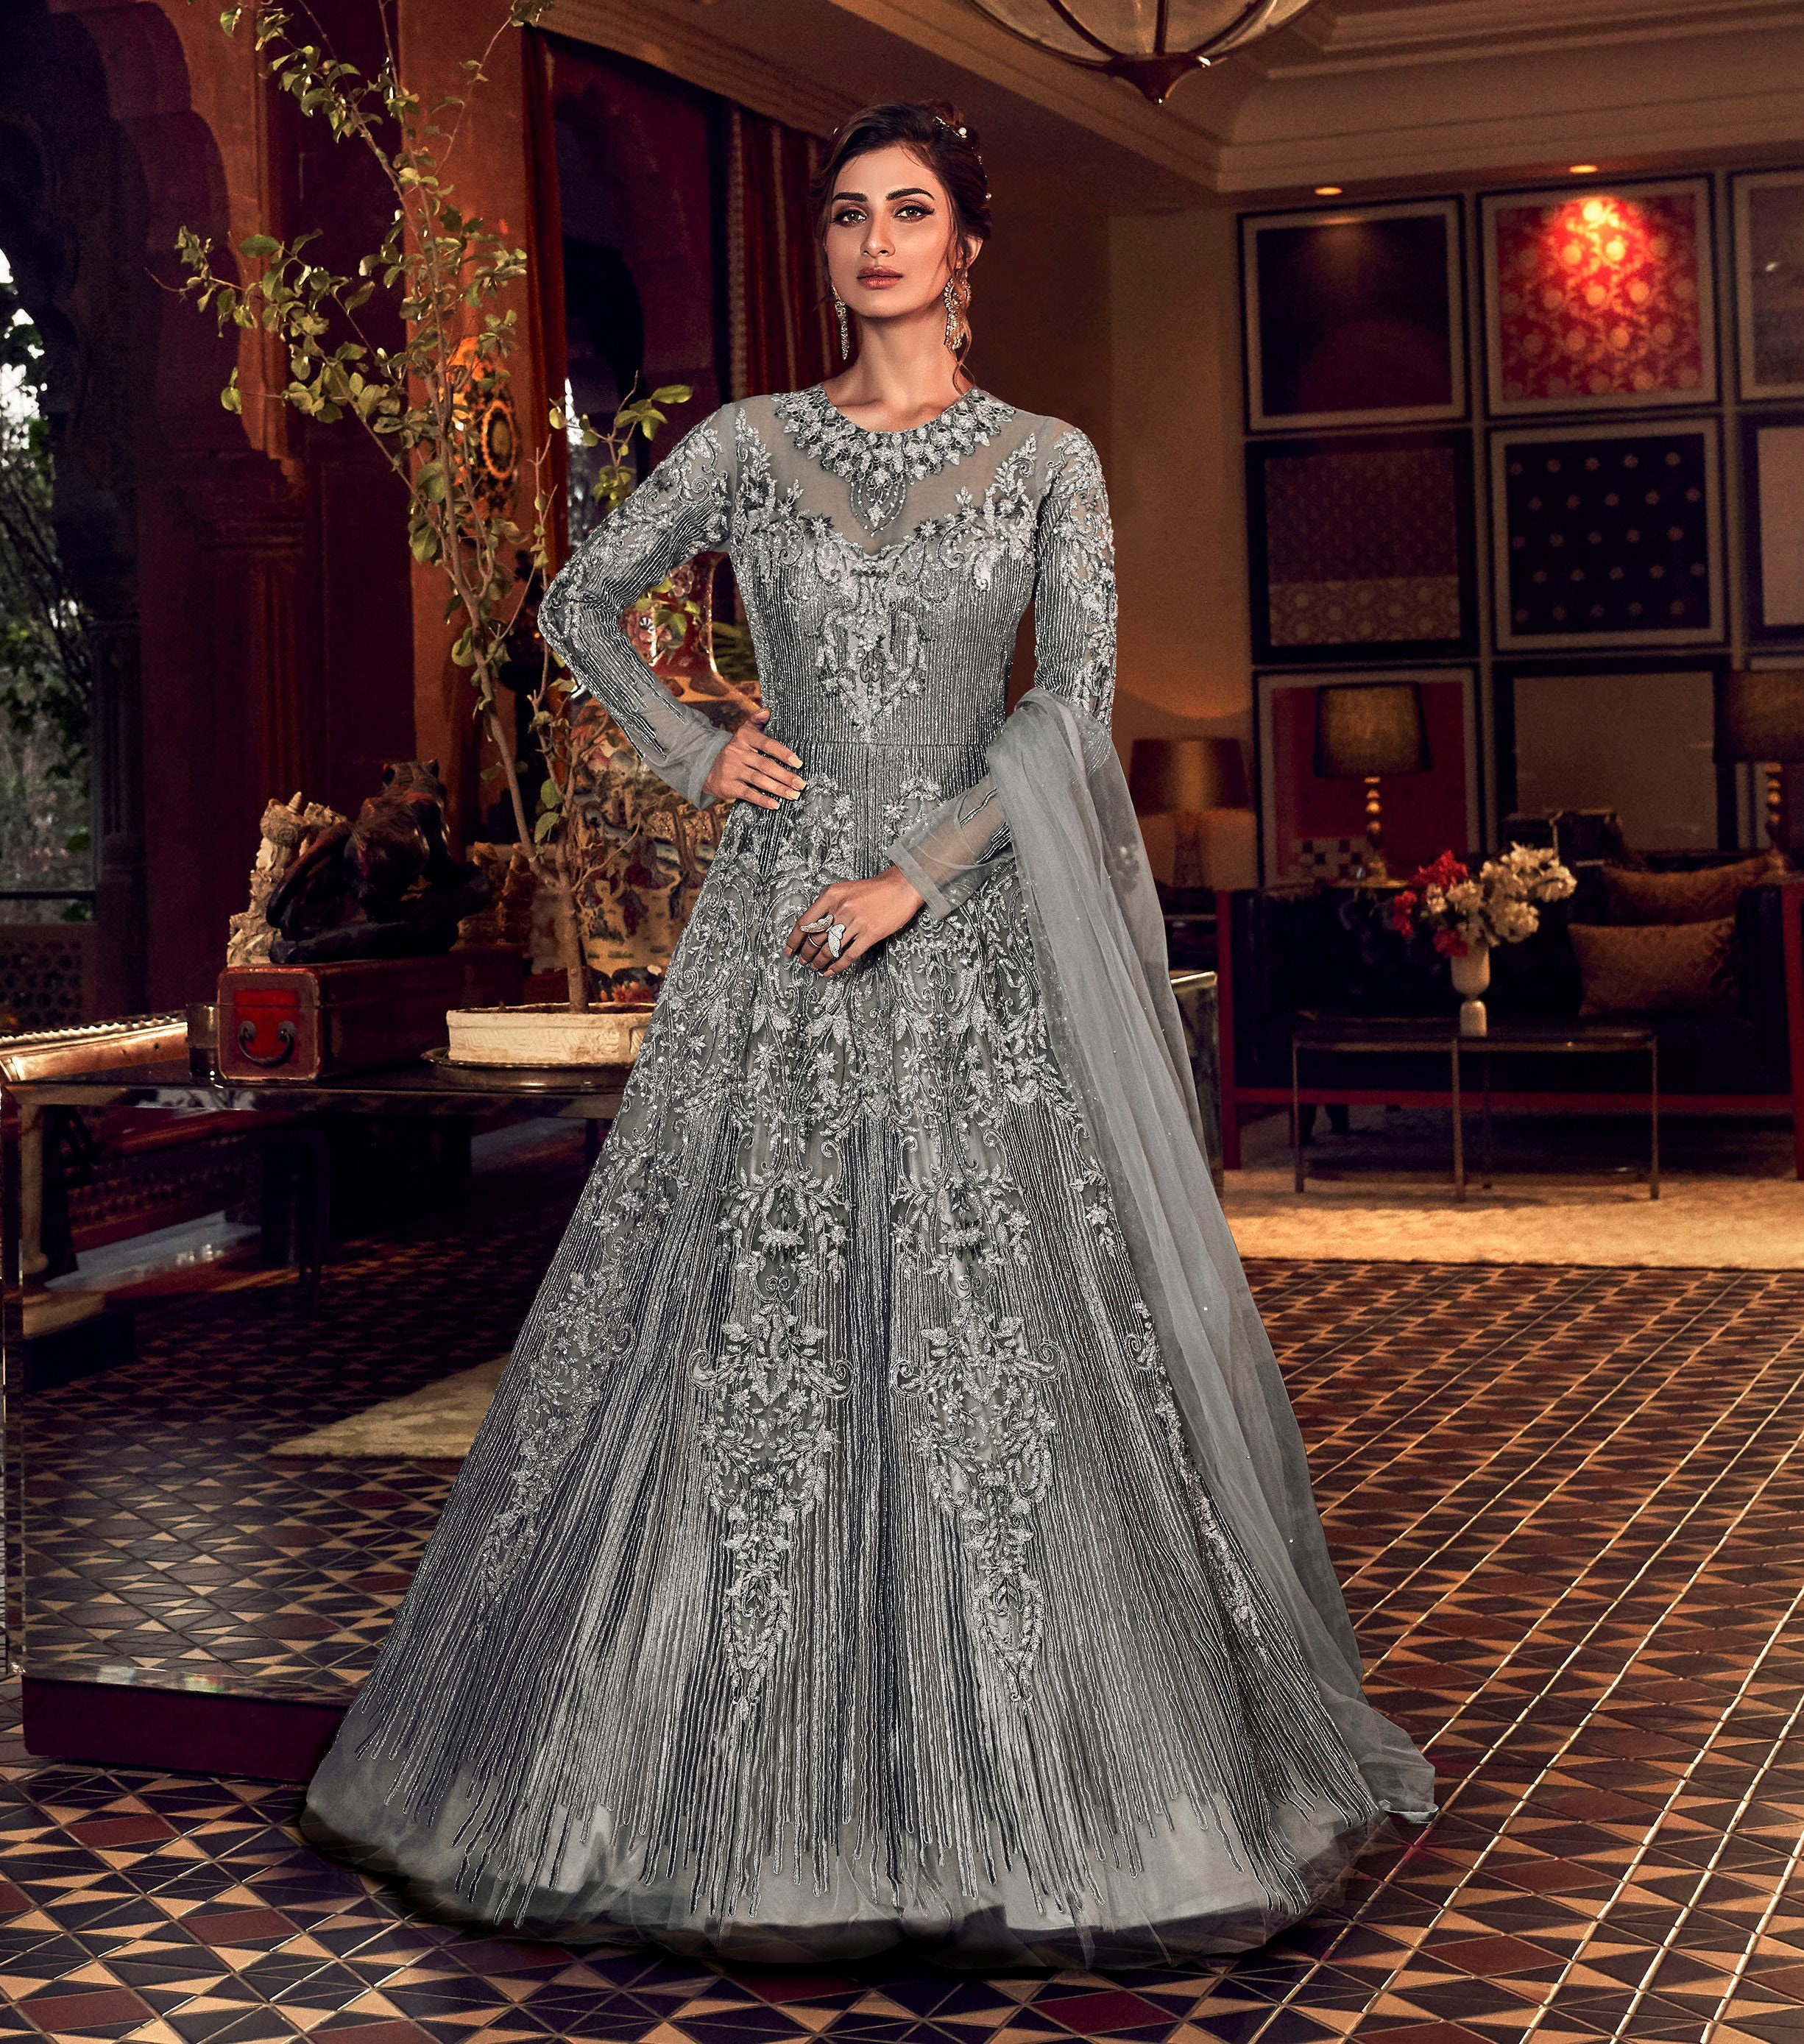 Designer Bridal Gown Indian Wedding Gown Grey Anarkali Suit Heavy Full  Length Gown Bridal Gowns For Women Wedding Dress Gown Pakistani Suits